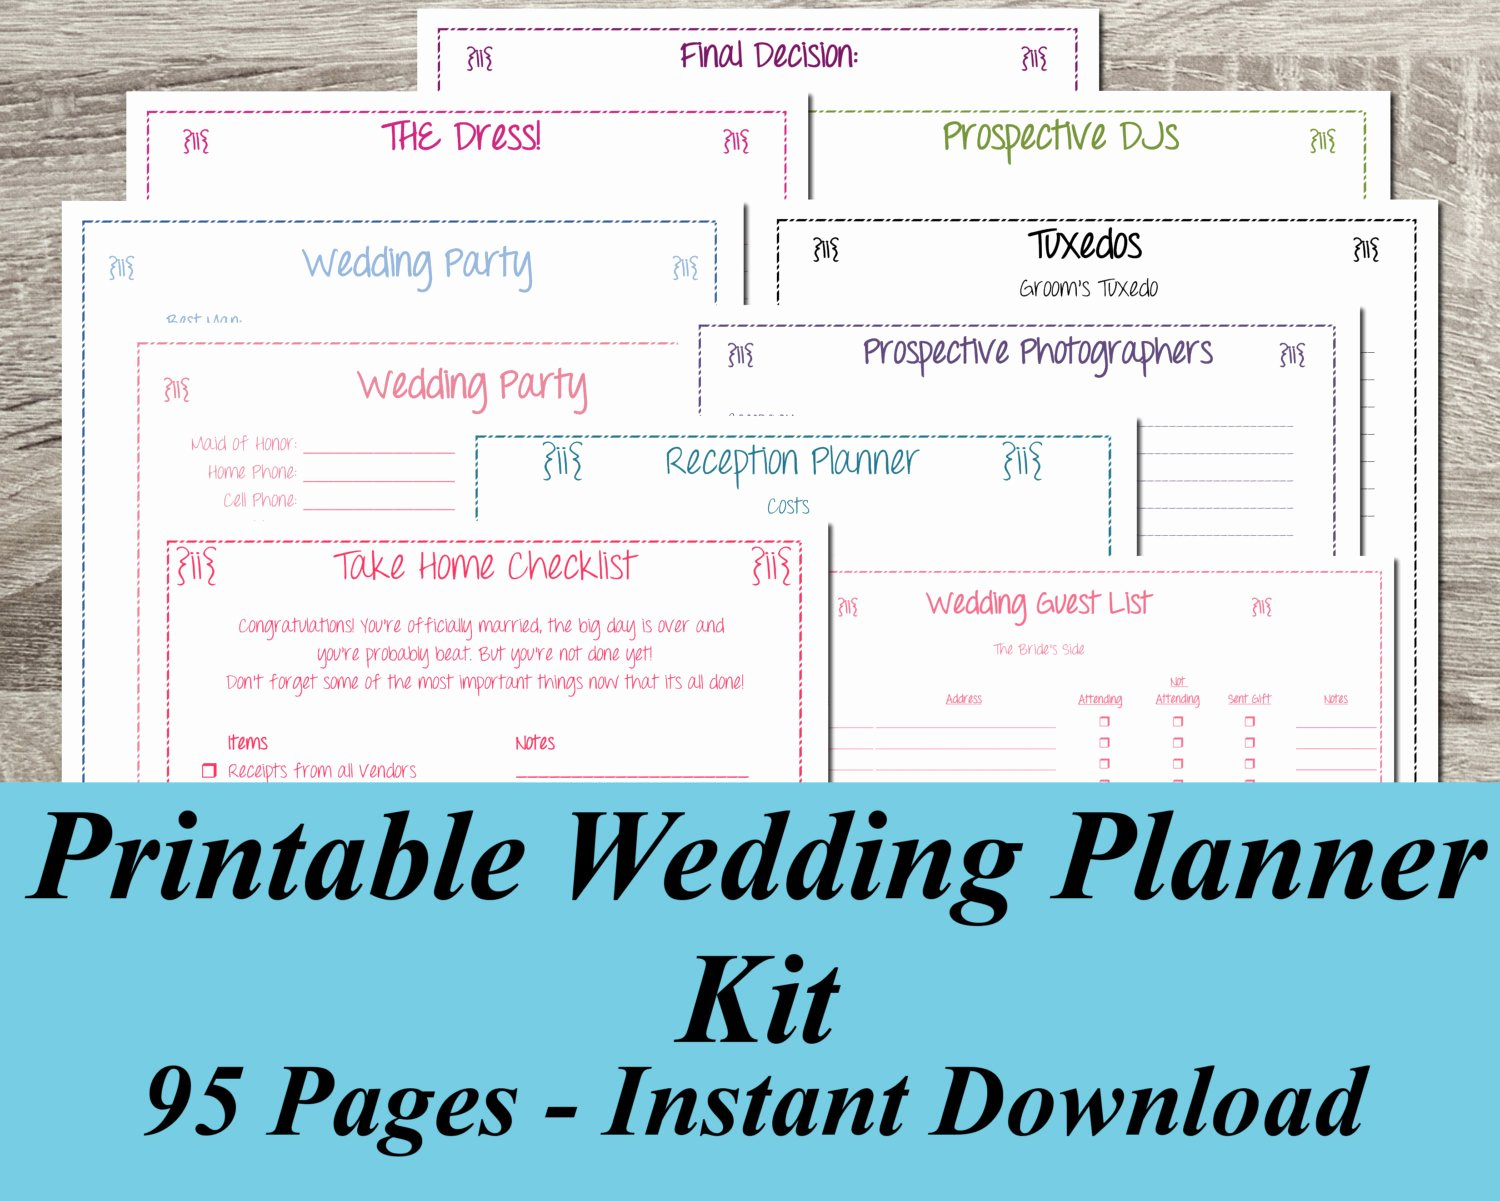 Wedding Planning Template Free Luxury Printable Wedding Planner Instant Download Ultimate Wedding